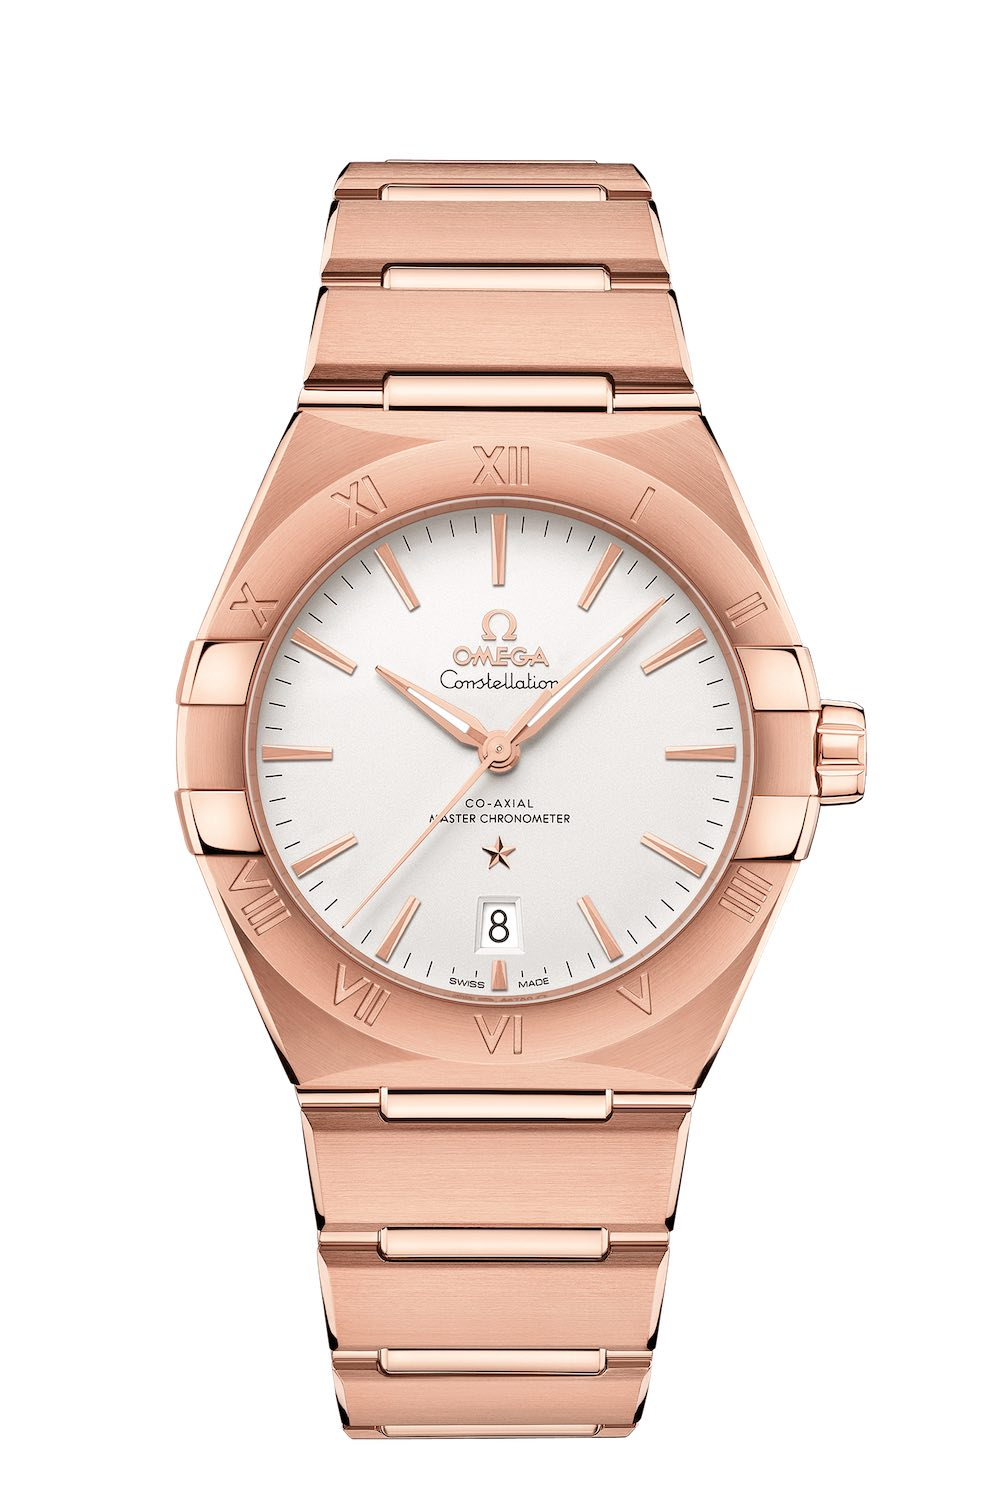 omega-constellation-omega-co-axial-master-chronometer-39-mm-13150392002001-1-product-zoom